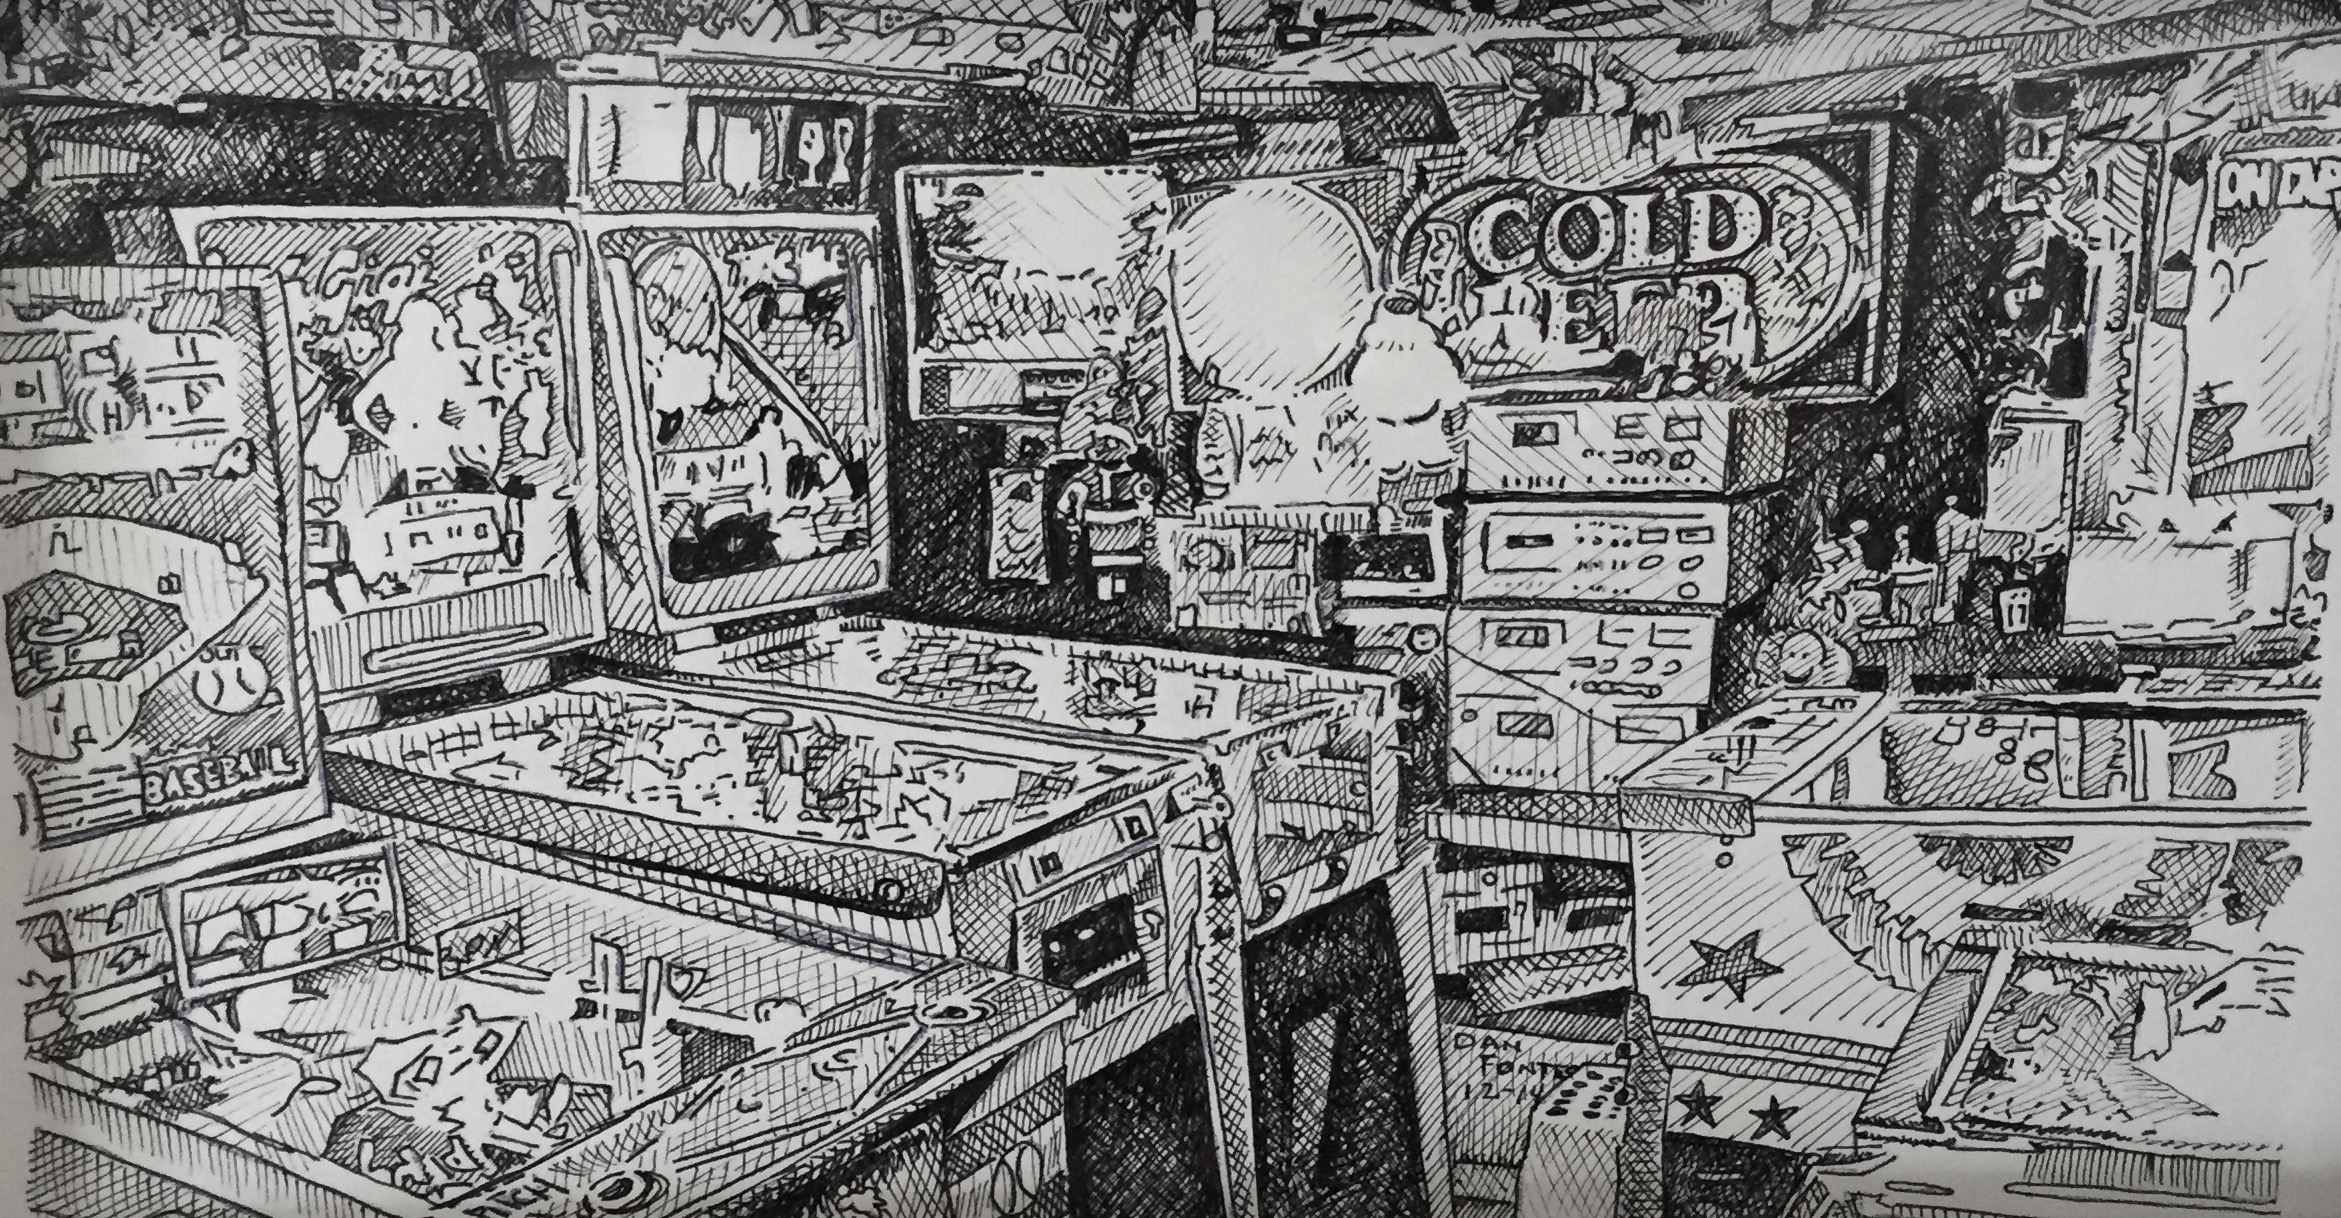 """Title: """"Mac's Basement"""" 12-14    Media: Pen and Ink    Dimensions: 8"""" x 11""""    Collection of: Kristi Holohan, Oakland"""